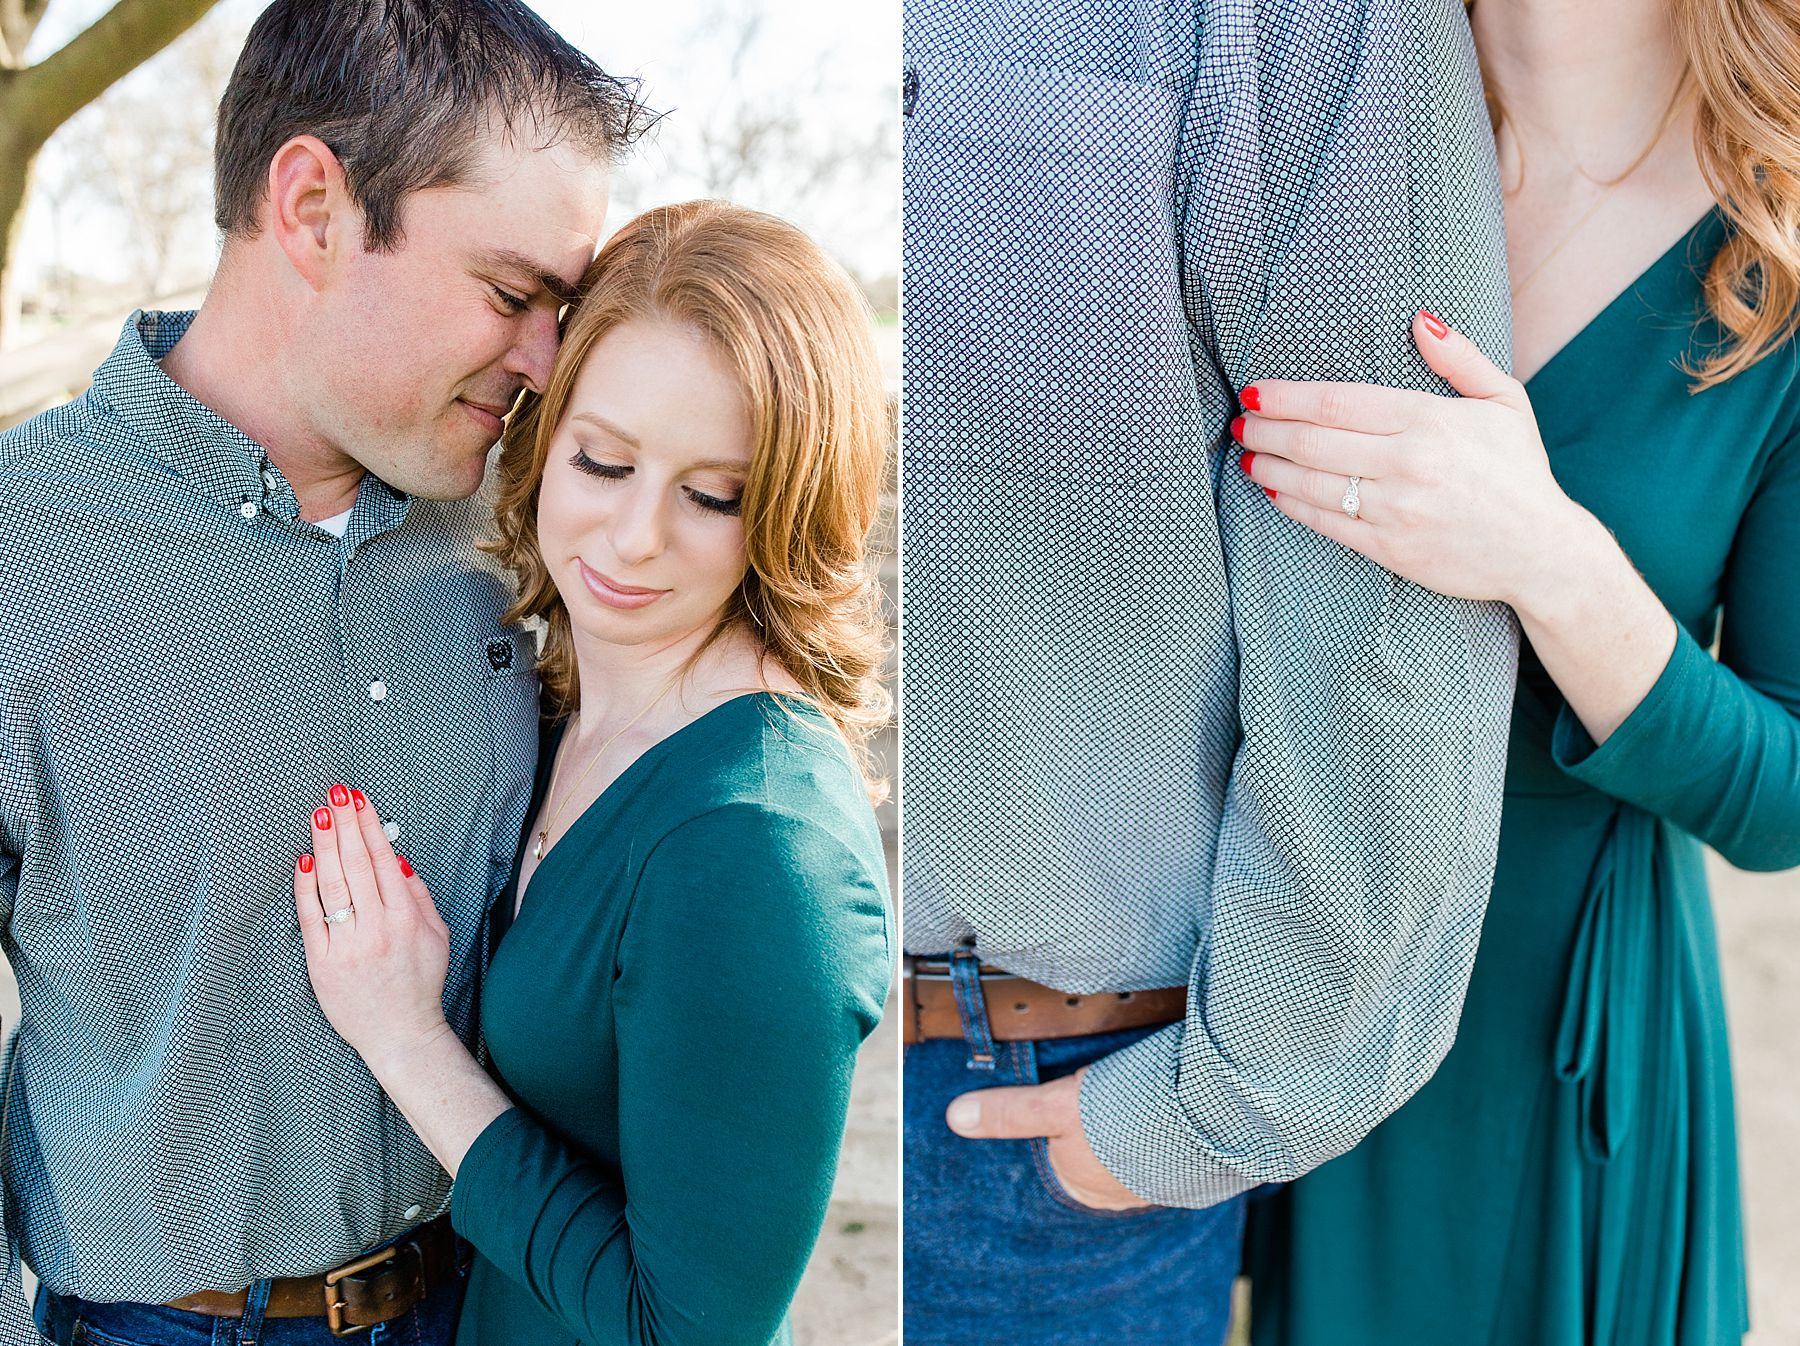 Viaggio Winery Engagement Session - Liz and TJ - Lodi Winery Wedding Photographer_0022.jpg